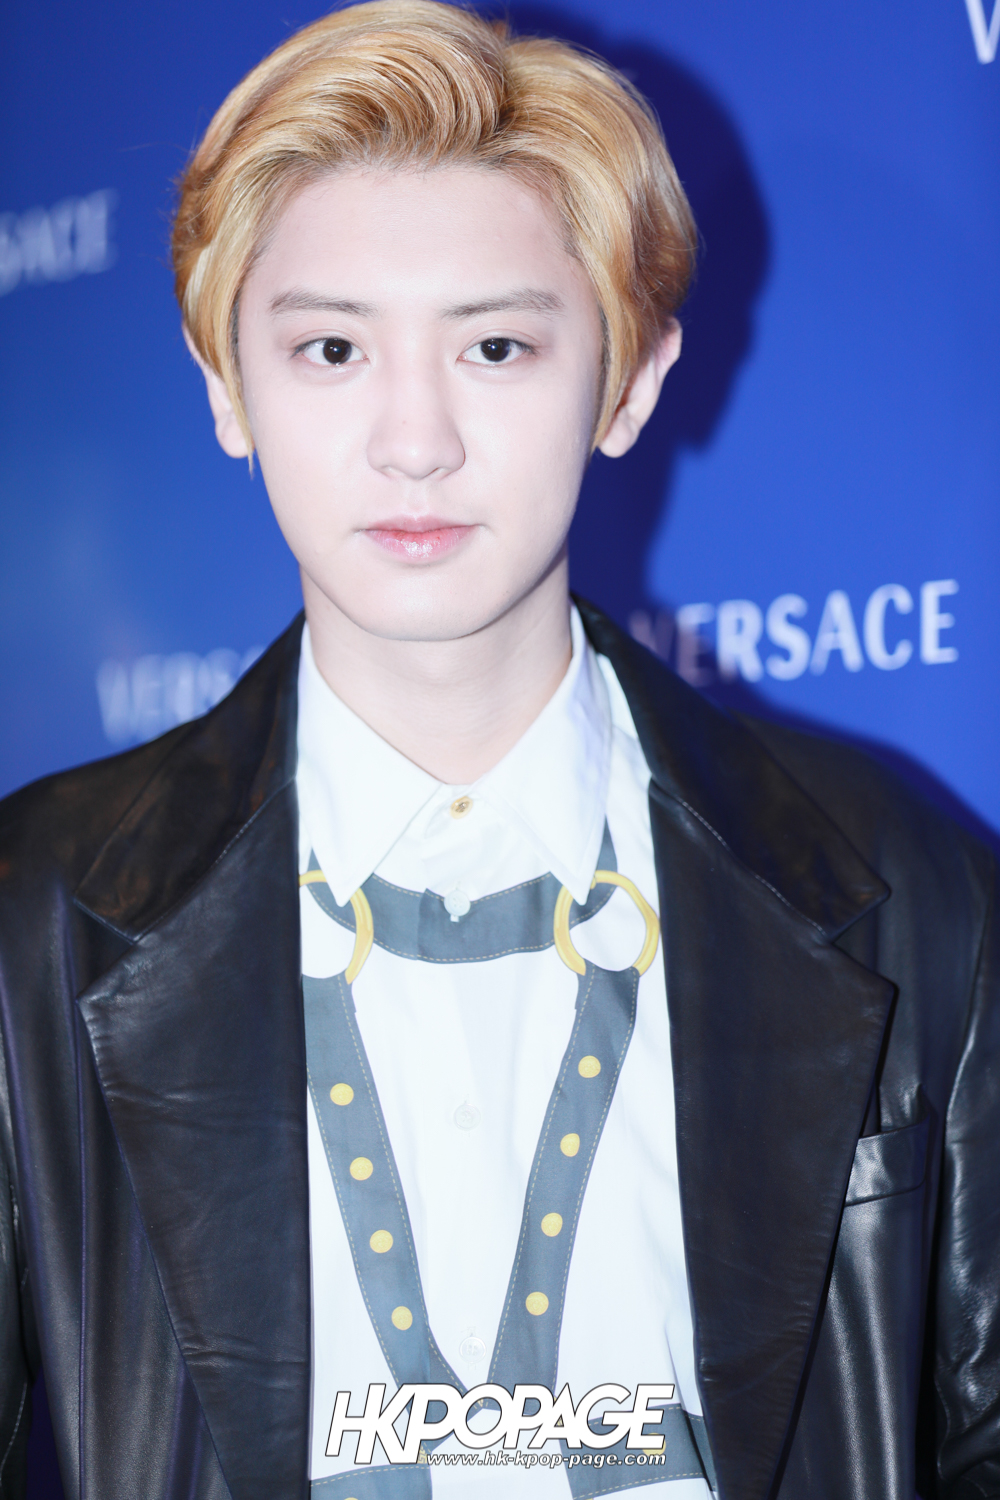 [HK.KPOP.PAGE] 190426_Chanyeol_VERSACE EVENT-4